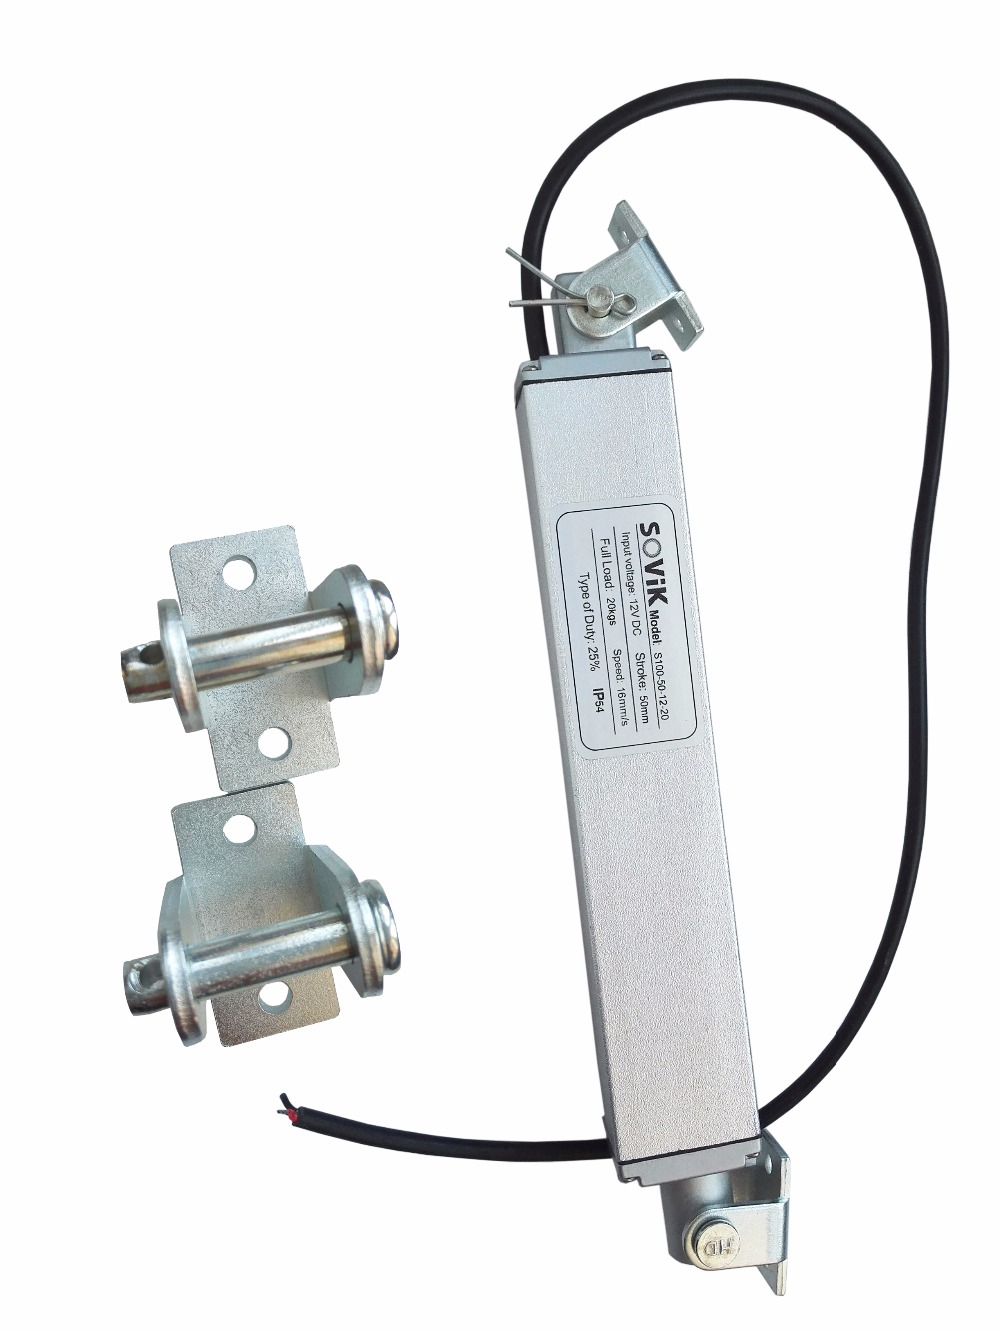 SOVik 2 inch 50mm Stroke Micro Linear Actuator 12V 24V DC In-line Designed with Mounting Brackets 200N 44lbs Max Lift<br>